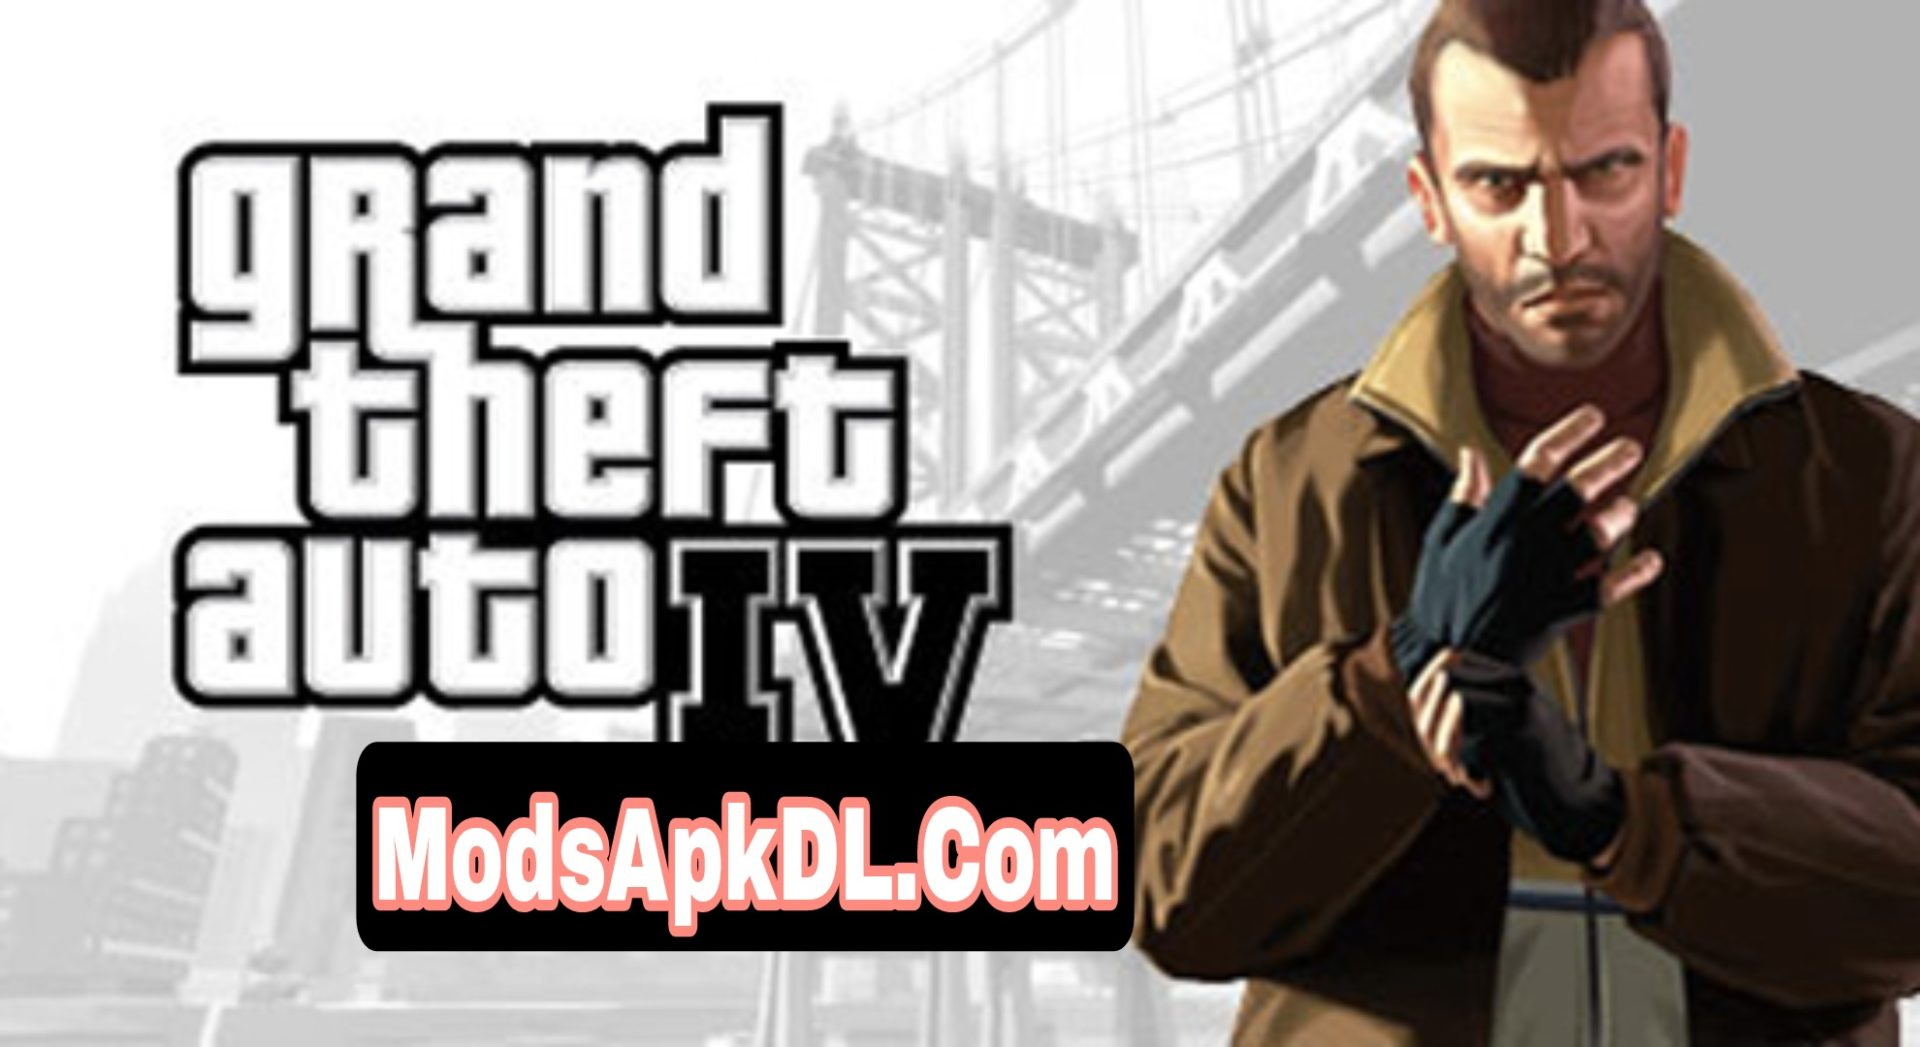 Grand Theft Auto IV / GTA 4 Mod Apk v1.0 Download For Android